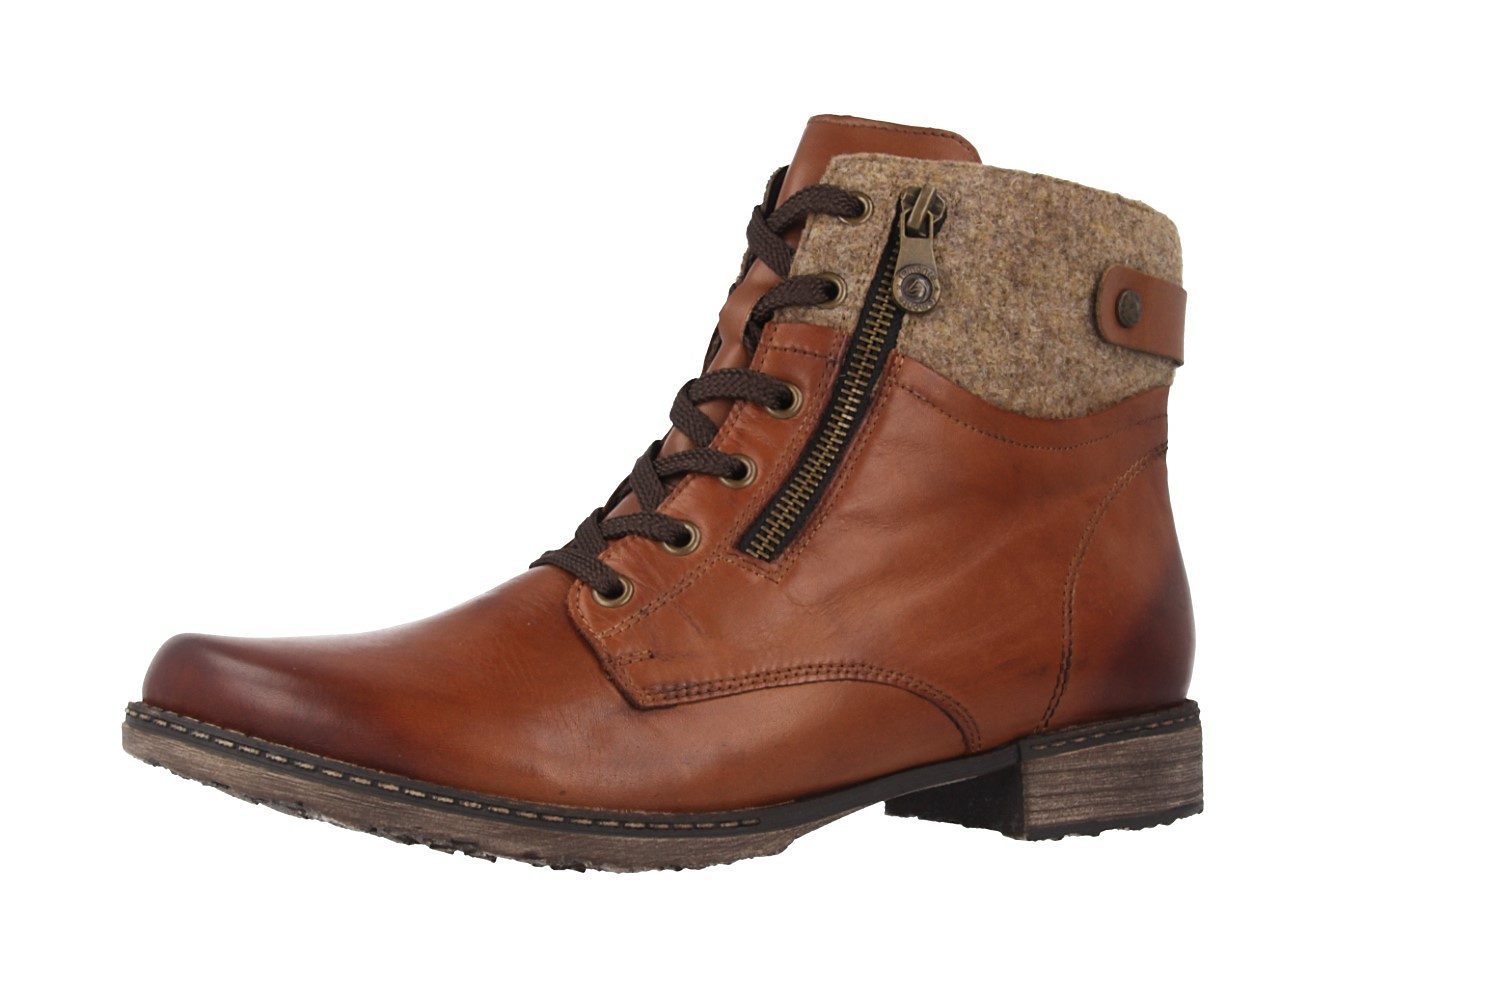 Remonte Boots